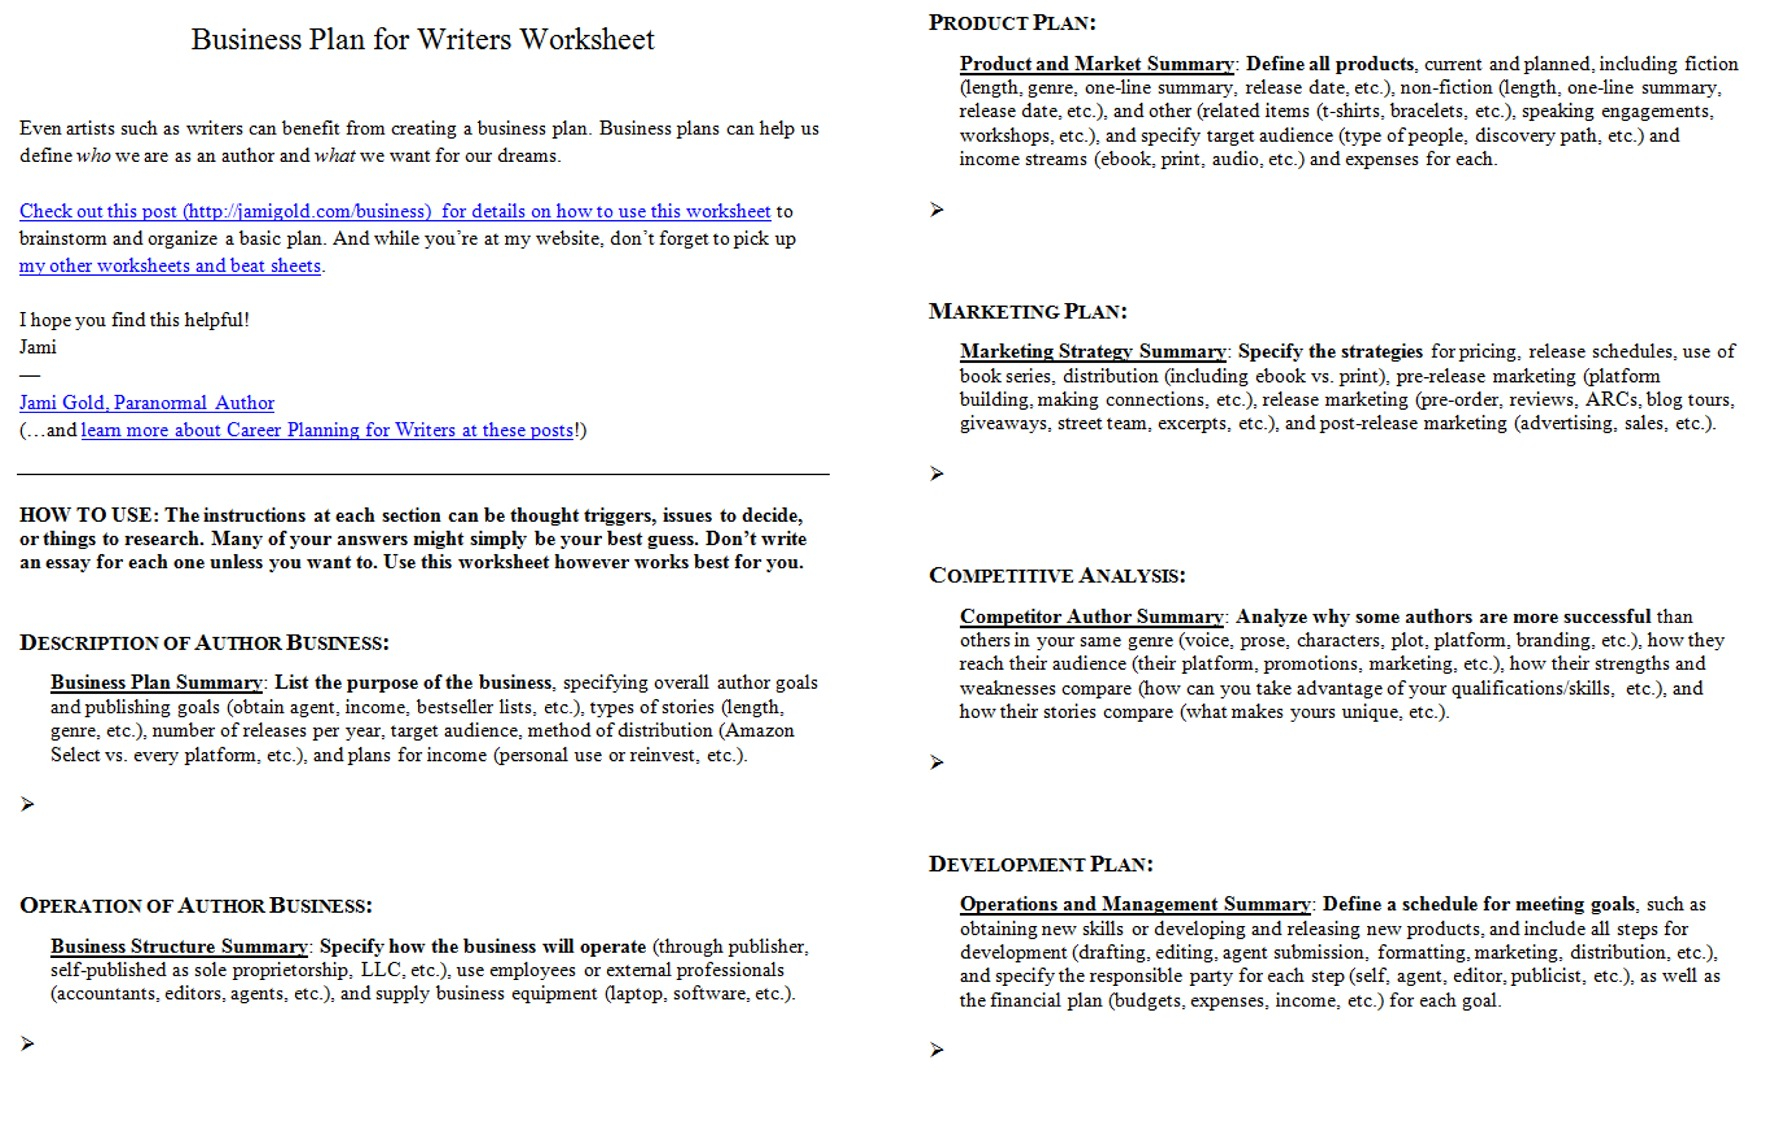 Proatmealus  Mesmerizing Worksheets For Writers  Jami Gold Paranormal Author With Goodlooking Screen Shot Of Both Pages Of The Business Plan For Writers Worksheet With Charming Division Drill Worksheet Also Th Grade Free Math Worksheets In Addition  Capital Gains Worksheet And Microscope Quiz Worksheet As Well As My Favorites Worksheet Additionally Proportion Worksheet Th Grade From Jamigoldcom With Proatmealus  Goodlooking Worksheets For Writers  Jami Gold Paranormal Author With Charming Screen Shot Of Both Pages Of The Business Plan For Writers Worksheet And Mesmerizing Division Drill Worksheet Also Th Grade Free Math Worksheets In Addition  Capital Gains Worksheet From Jamigoldcom